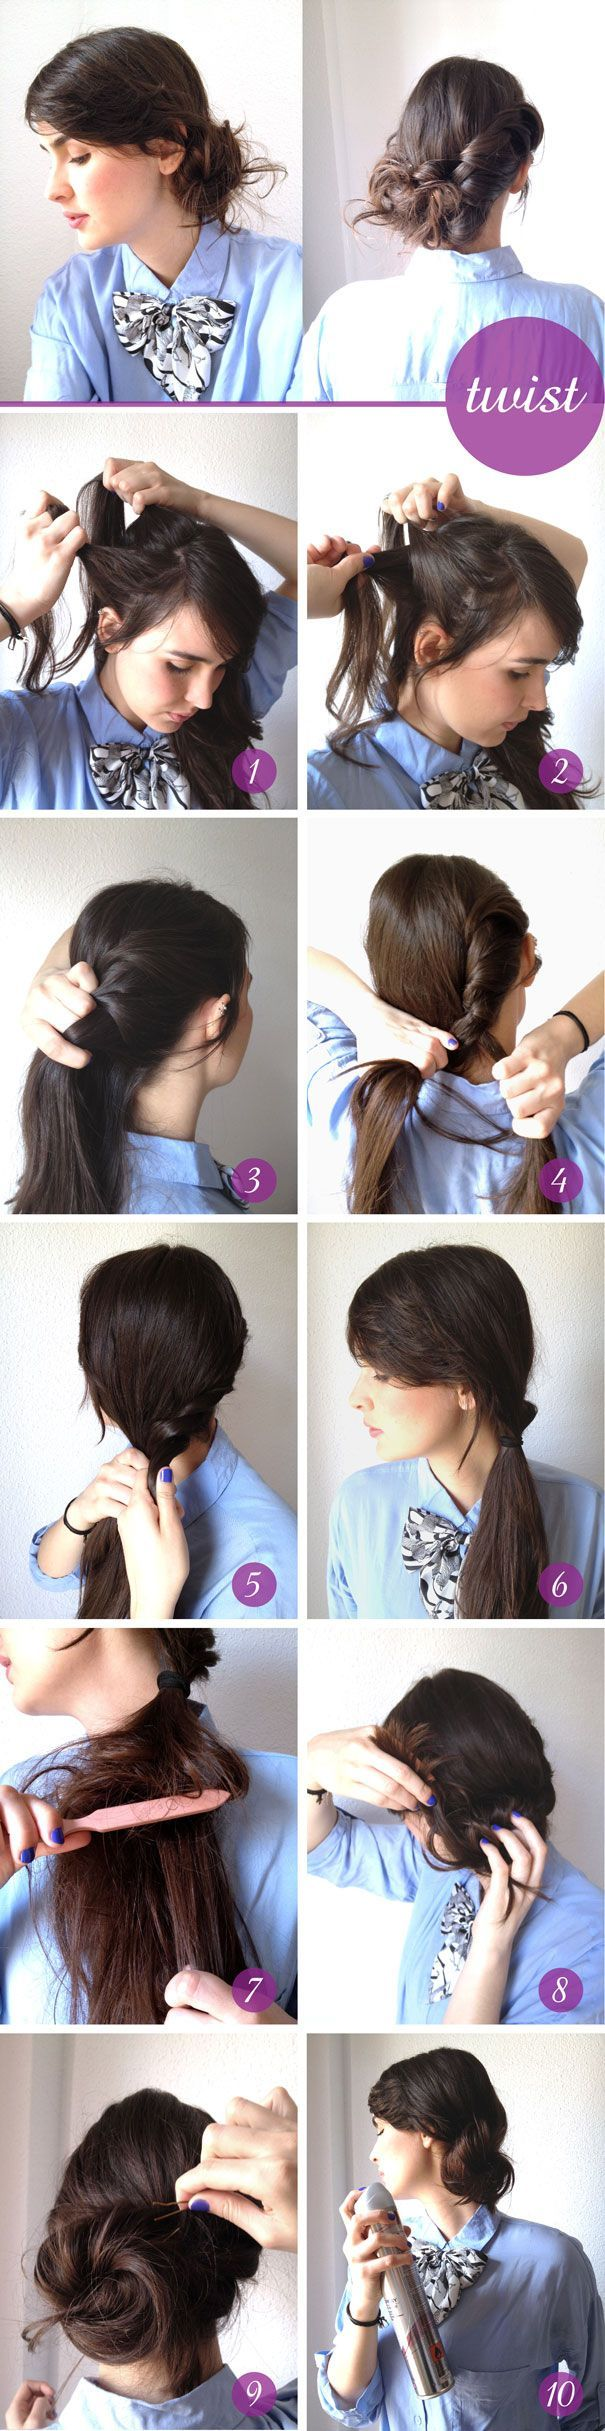 How to do hairstyles tutorials step by step for long hair medium